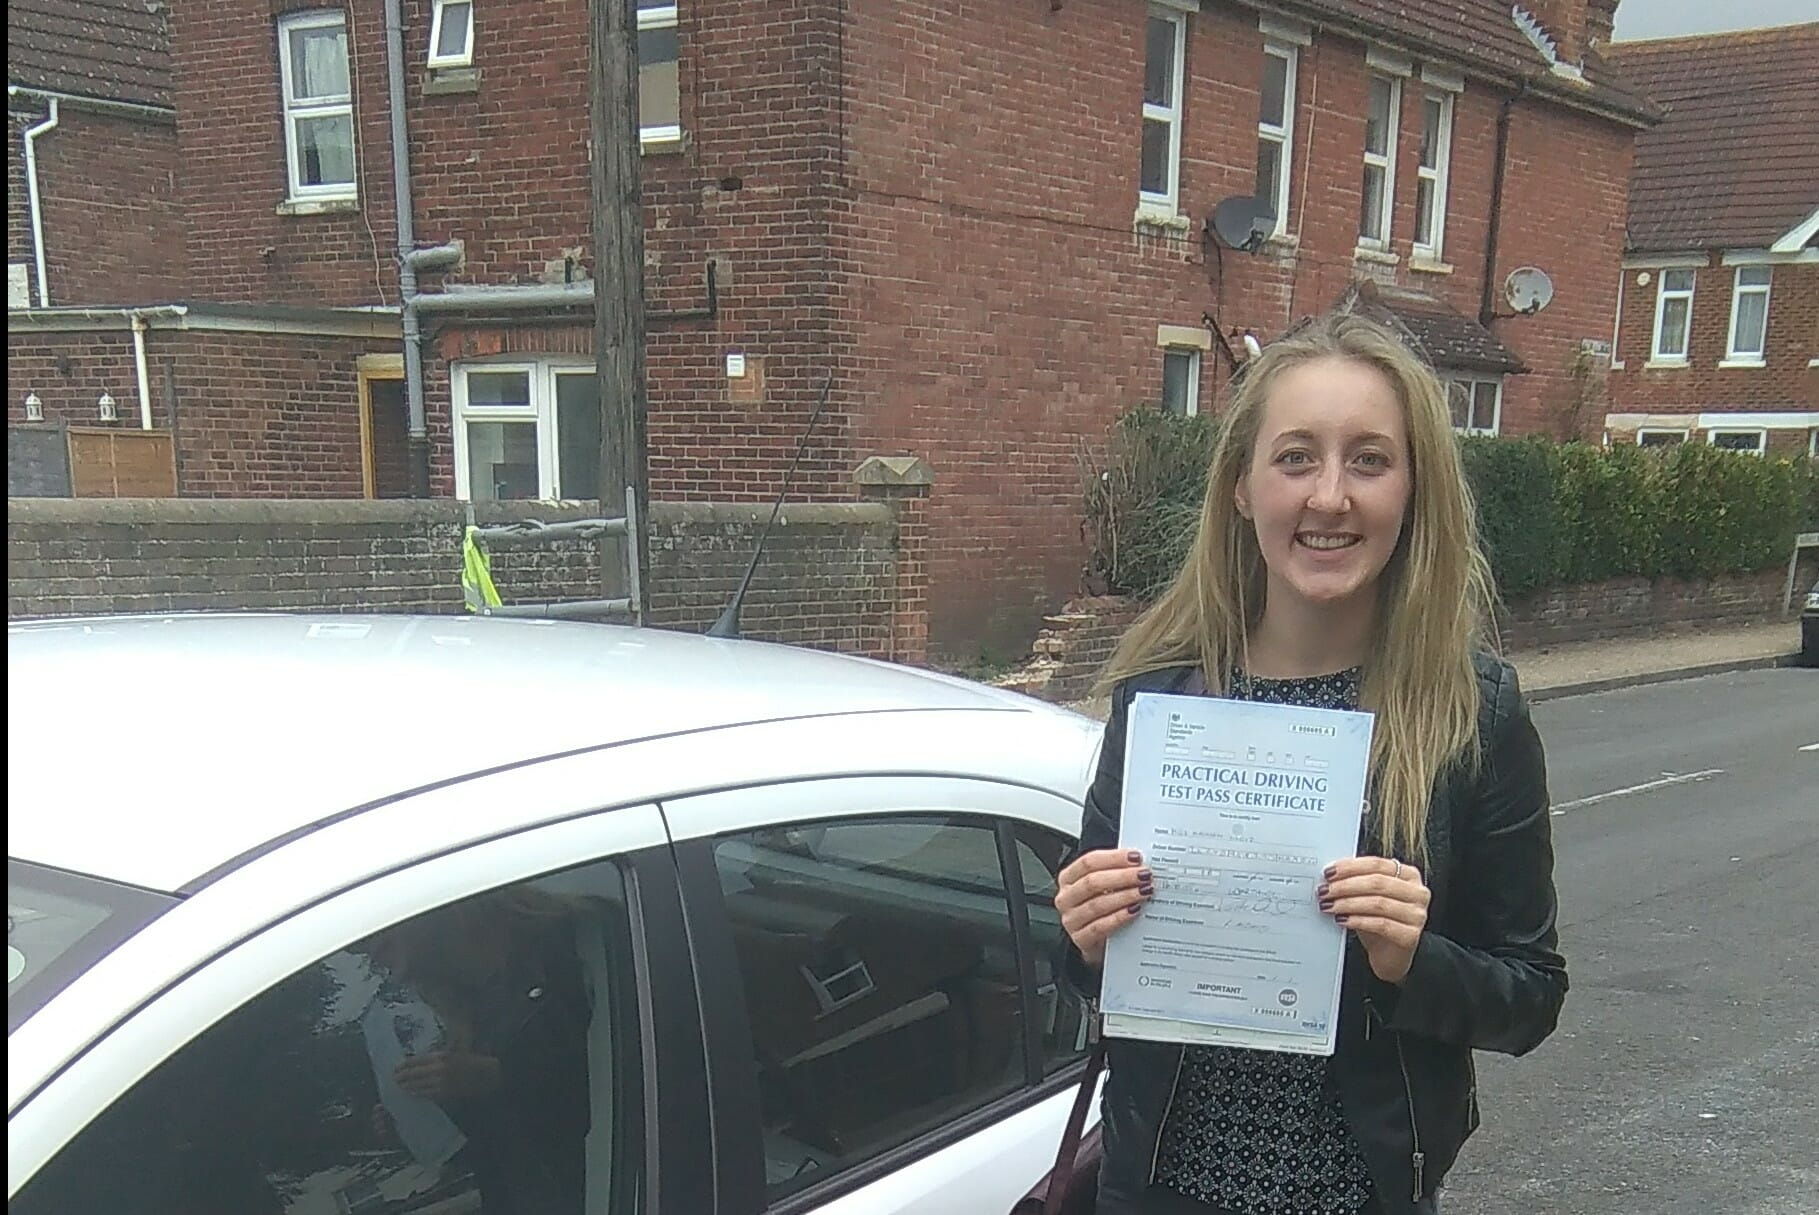 Well done to Madison of Littlehampton. First time pass.